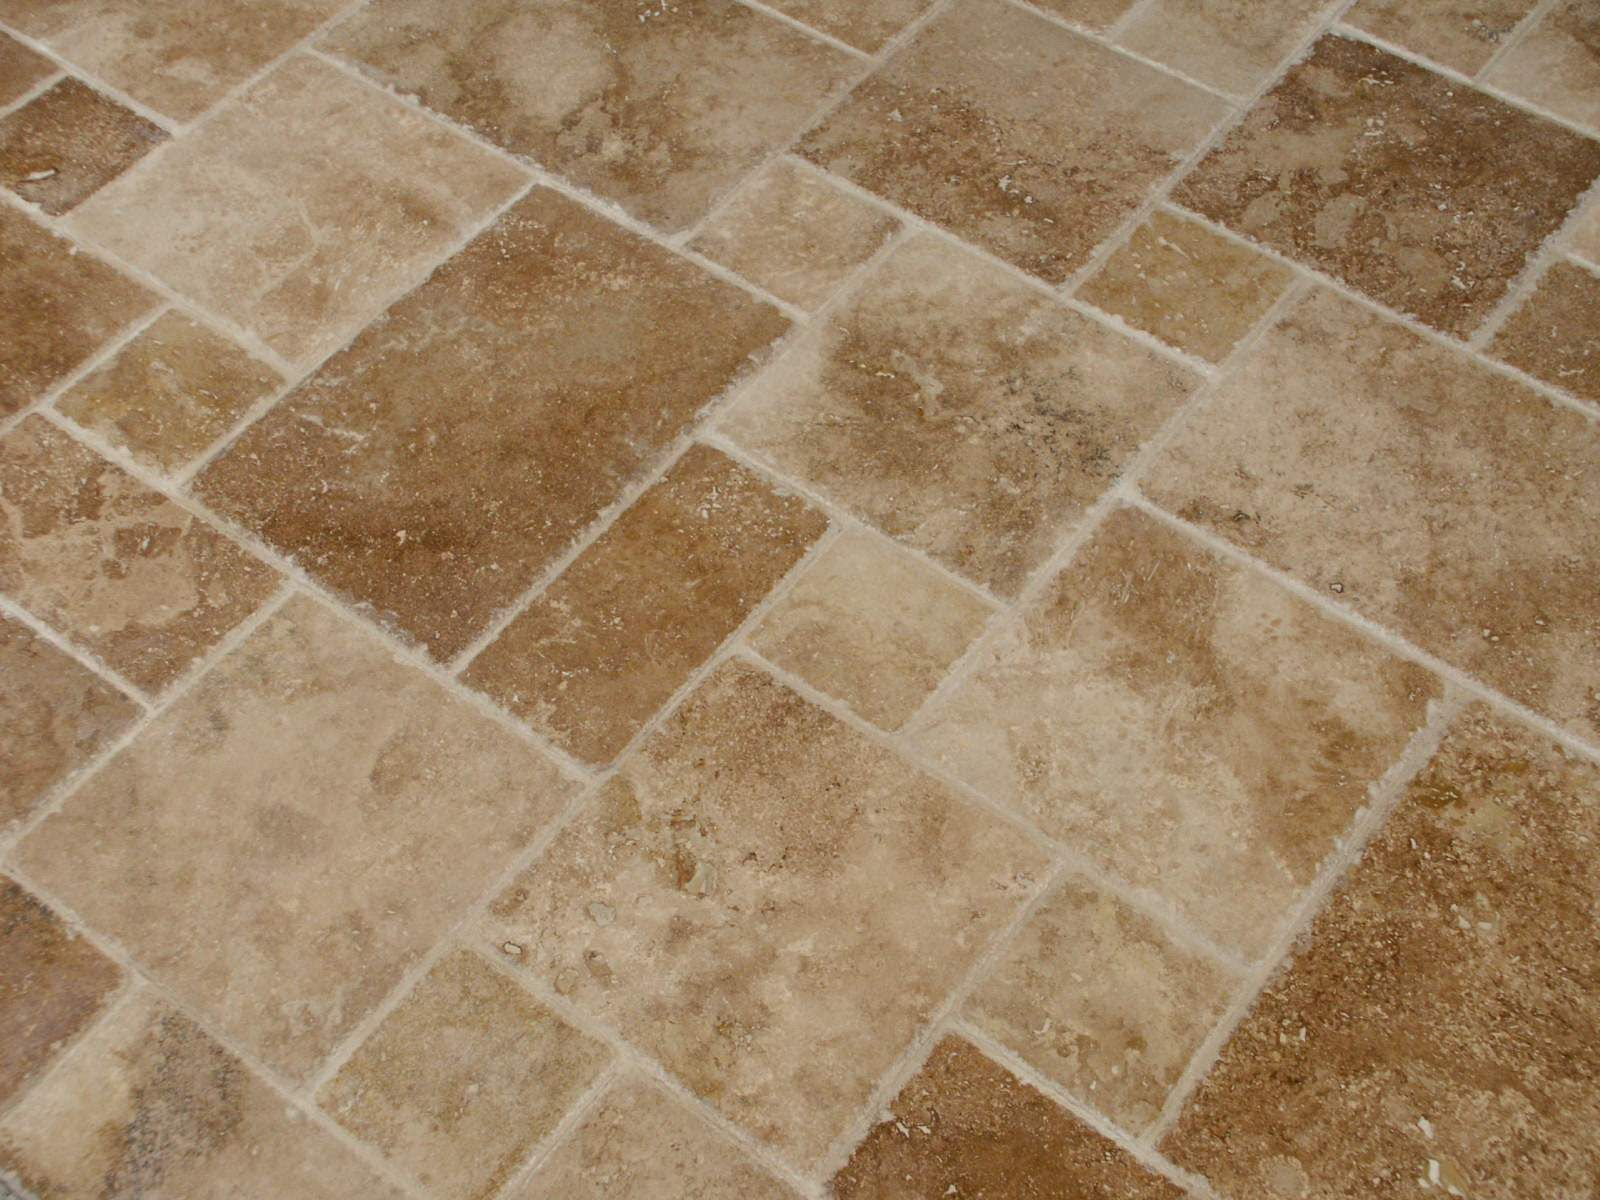 Noce French Pattern Distressed Edge Travertine Tile Mediterranean Products New York Elegant And Stone